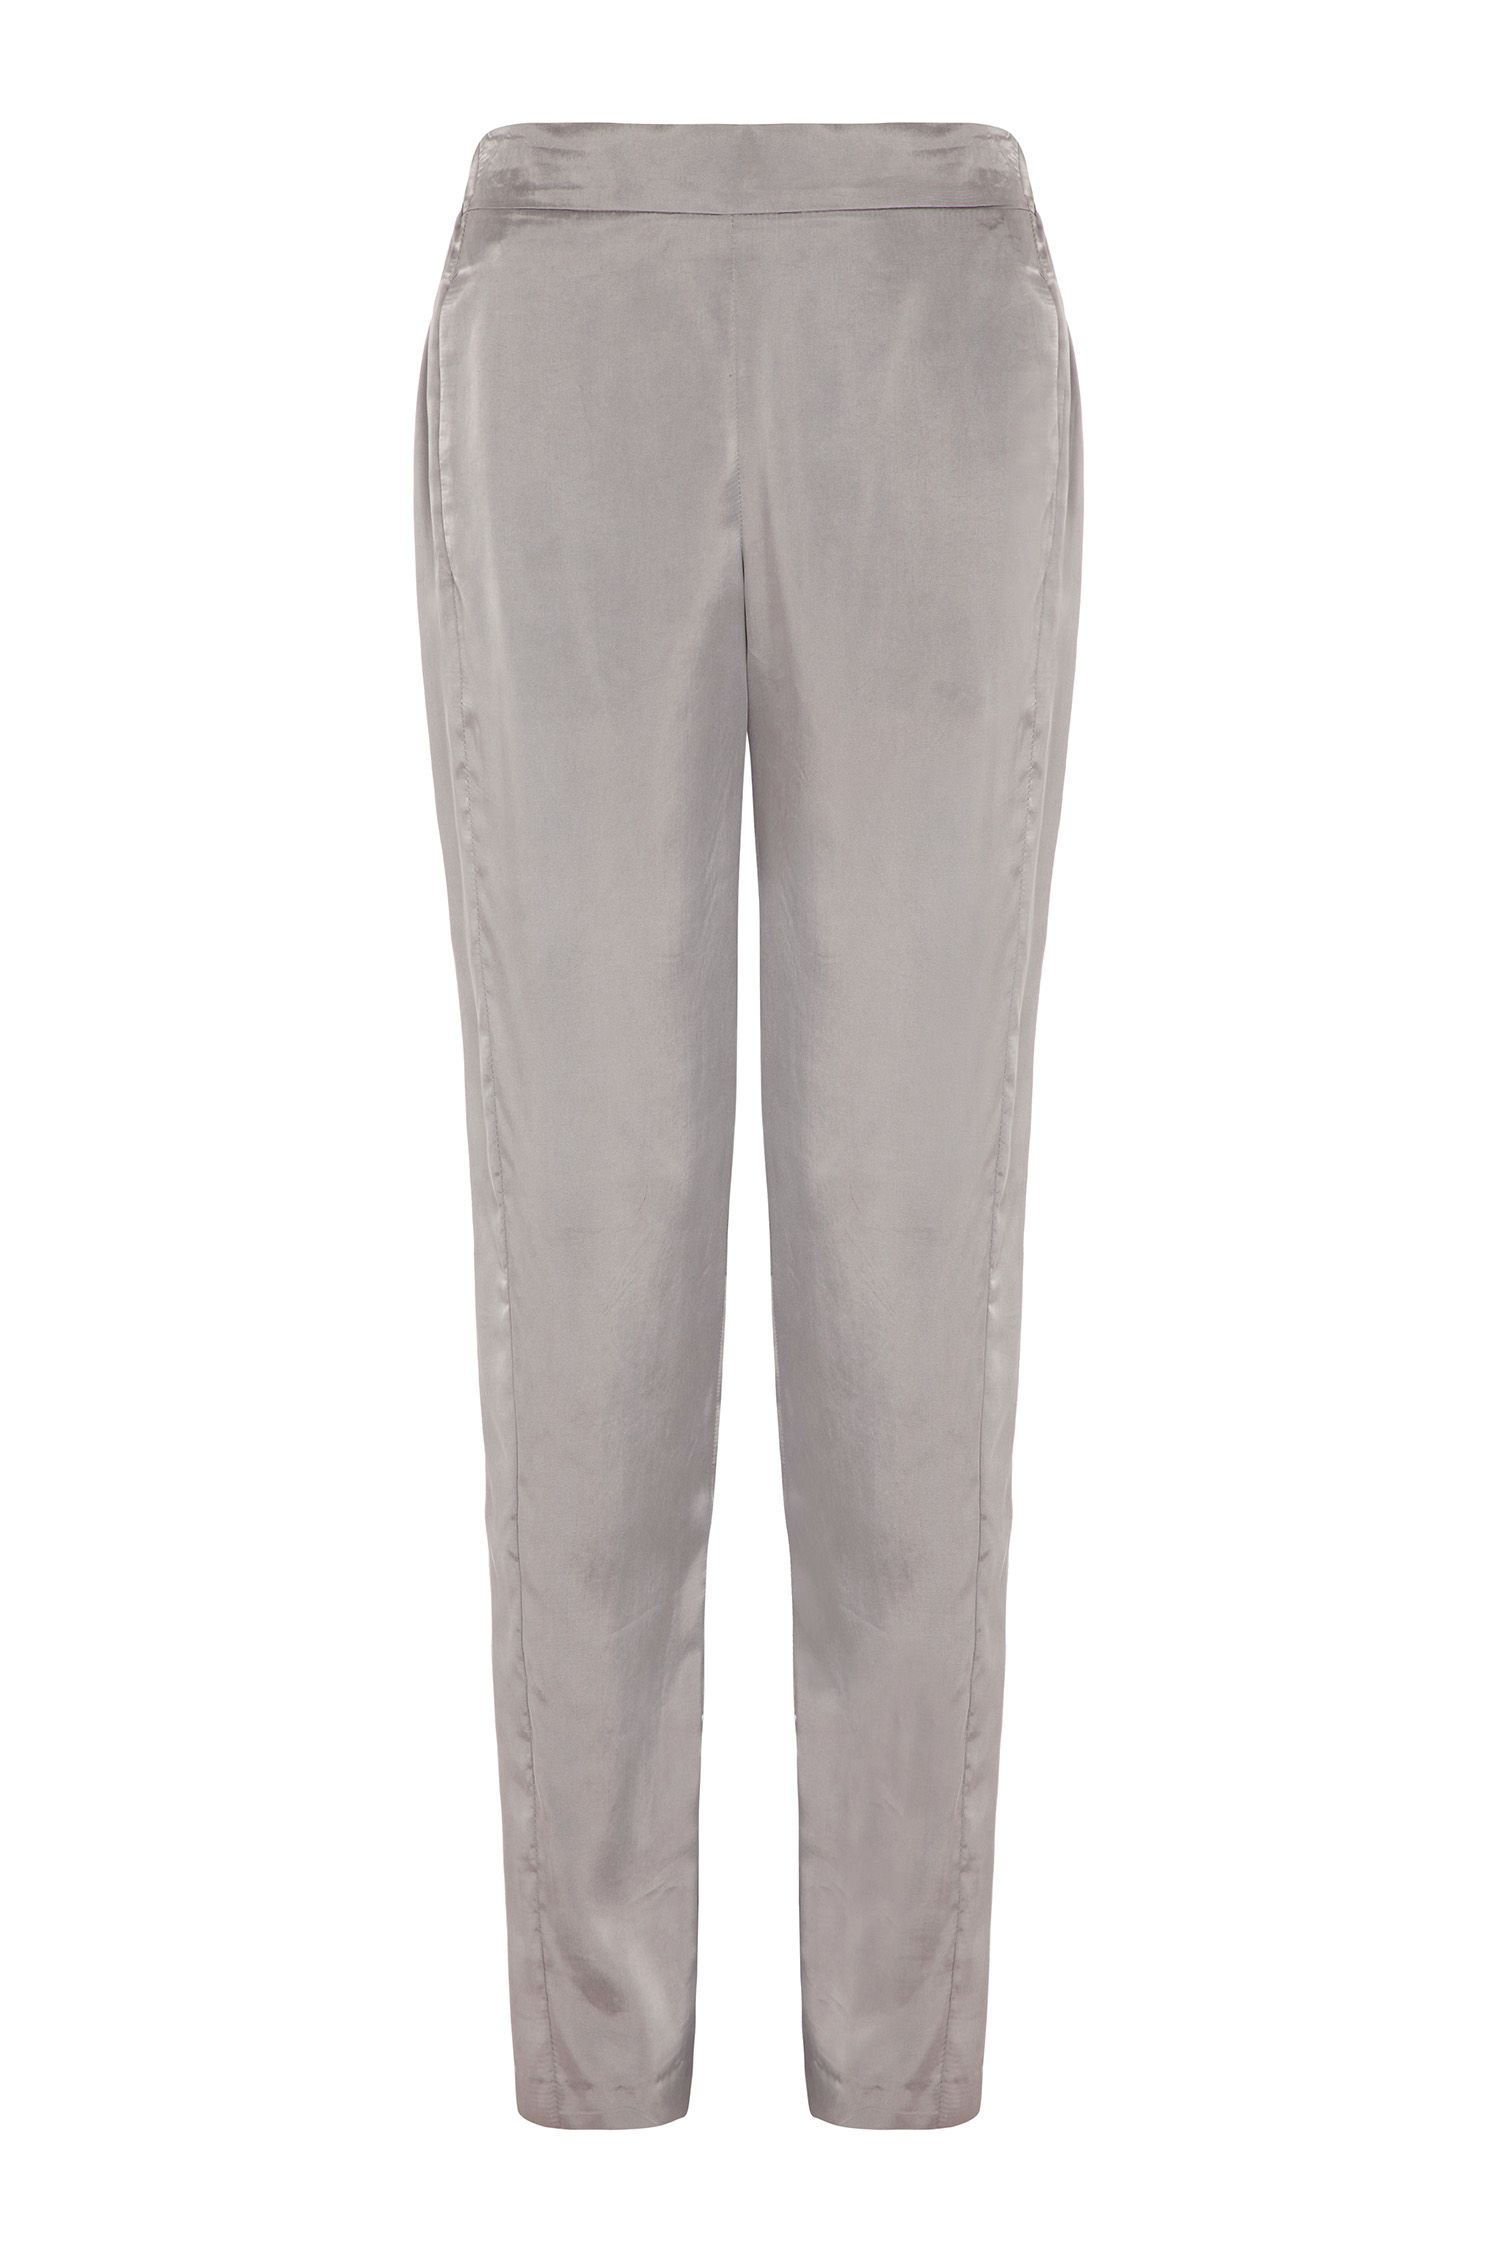 Damsel in a Dress Scala Trousers, Grey